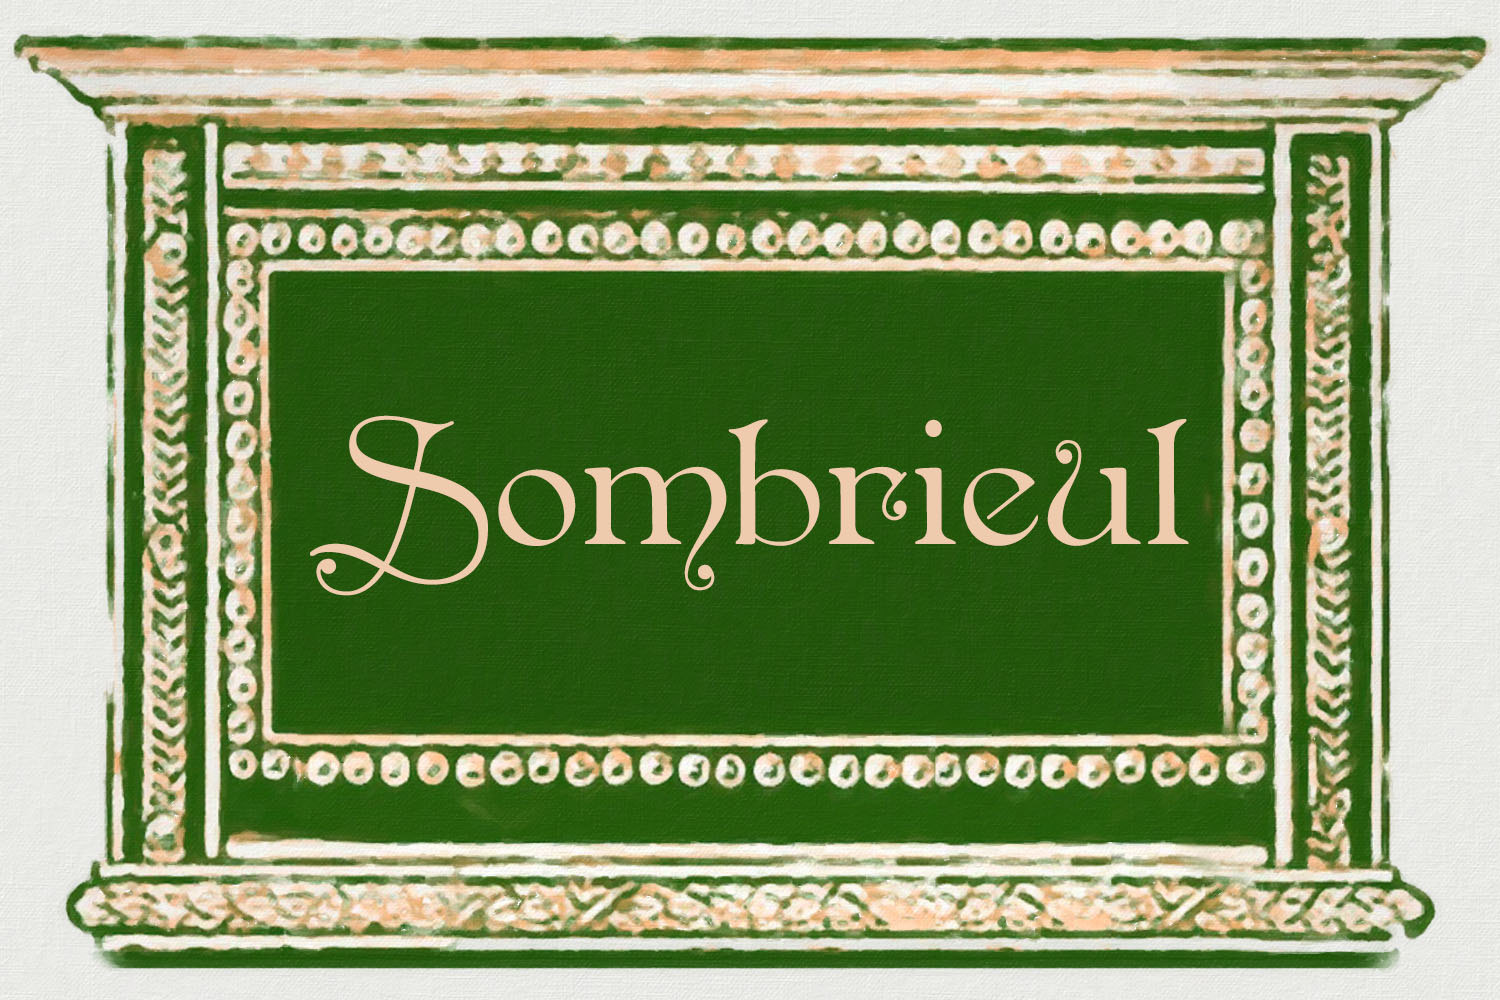 Sombrieul example image 1